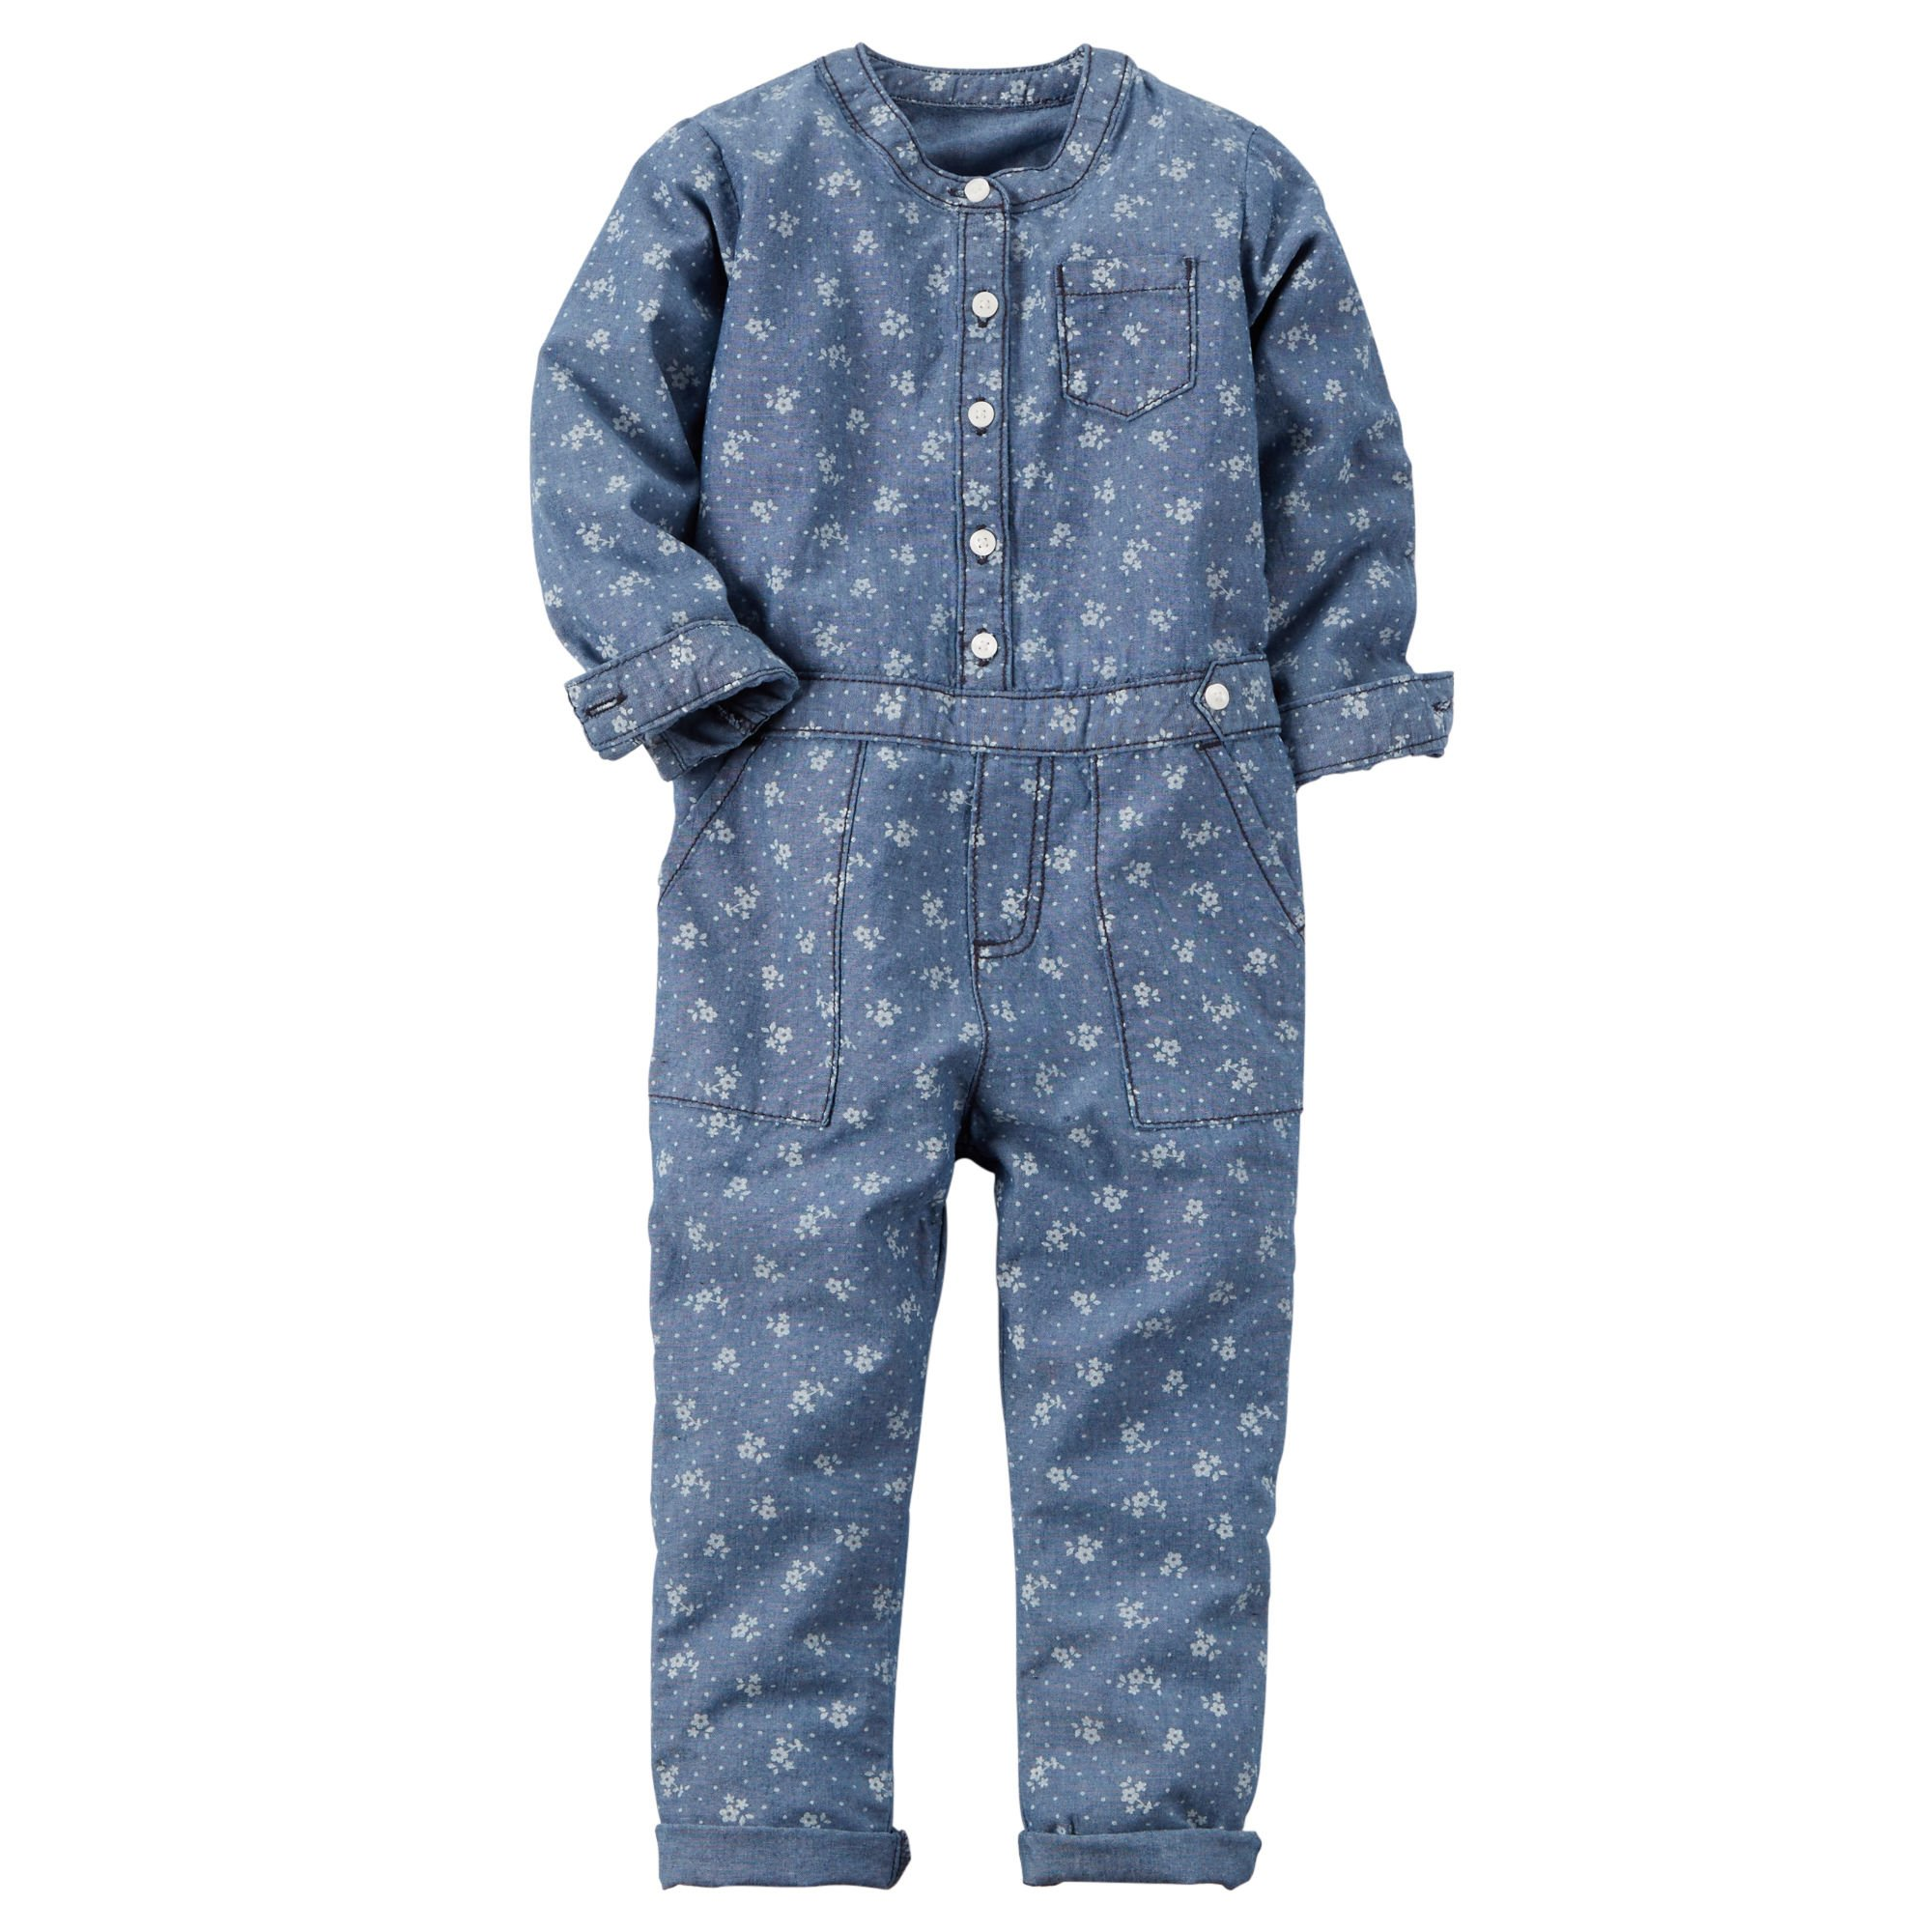 Carter's Girl's Blue Floral Print Chambray Jumpsuit (3T)